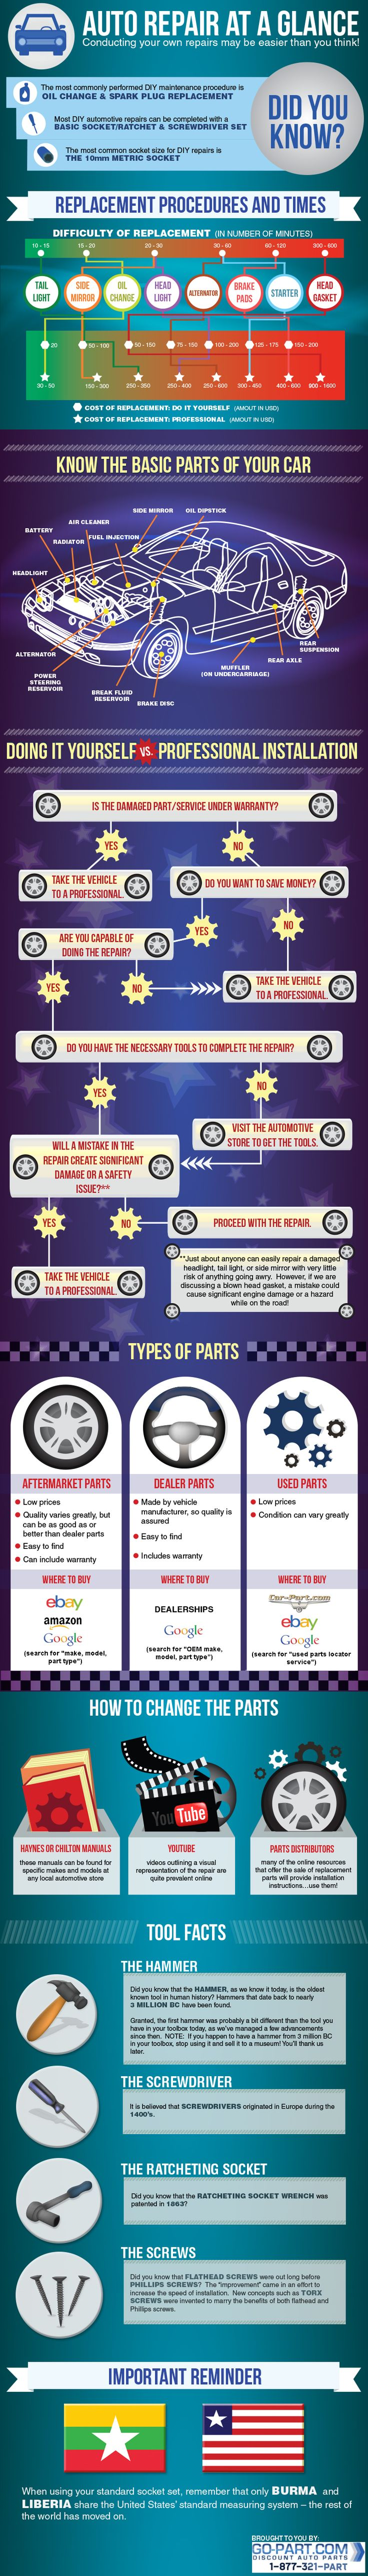 Car repairs at a glance infographic. Know the basics of repairing your car. http://finelinedrivingacademy.co.uk